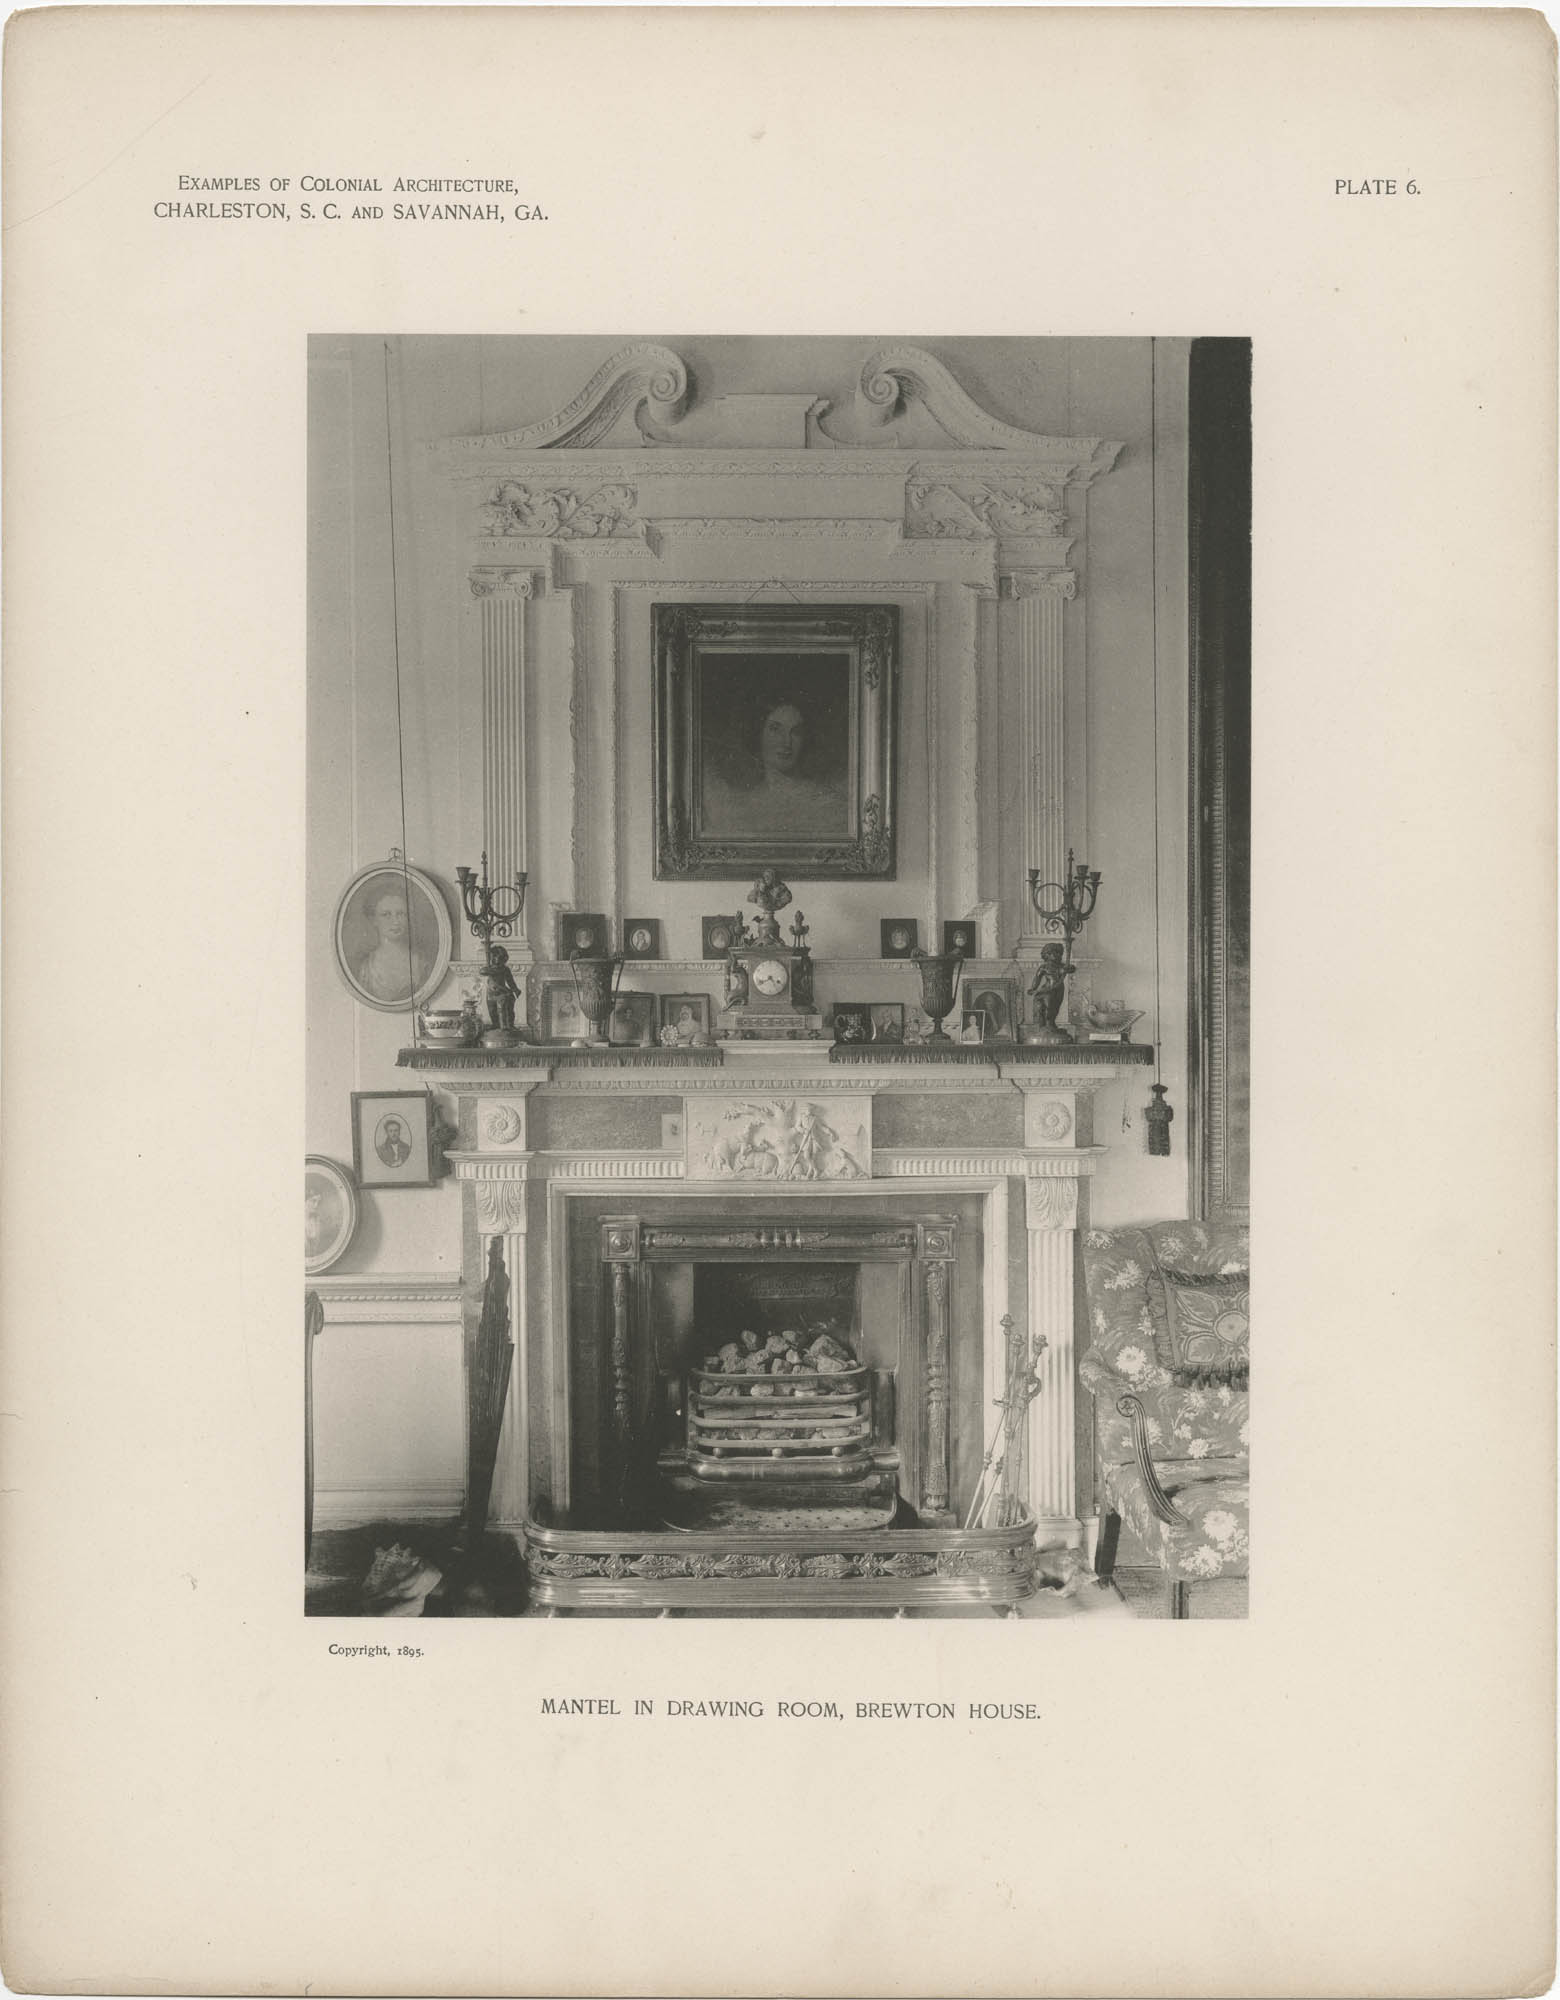 Plate 6: Mantel in Drawing Room, Brewton House